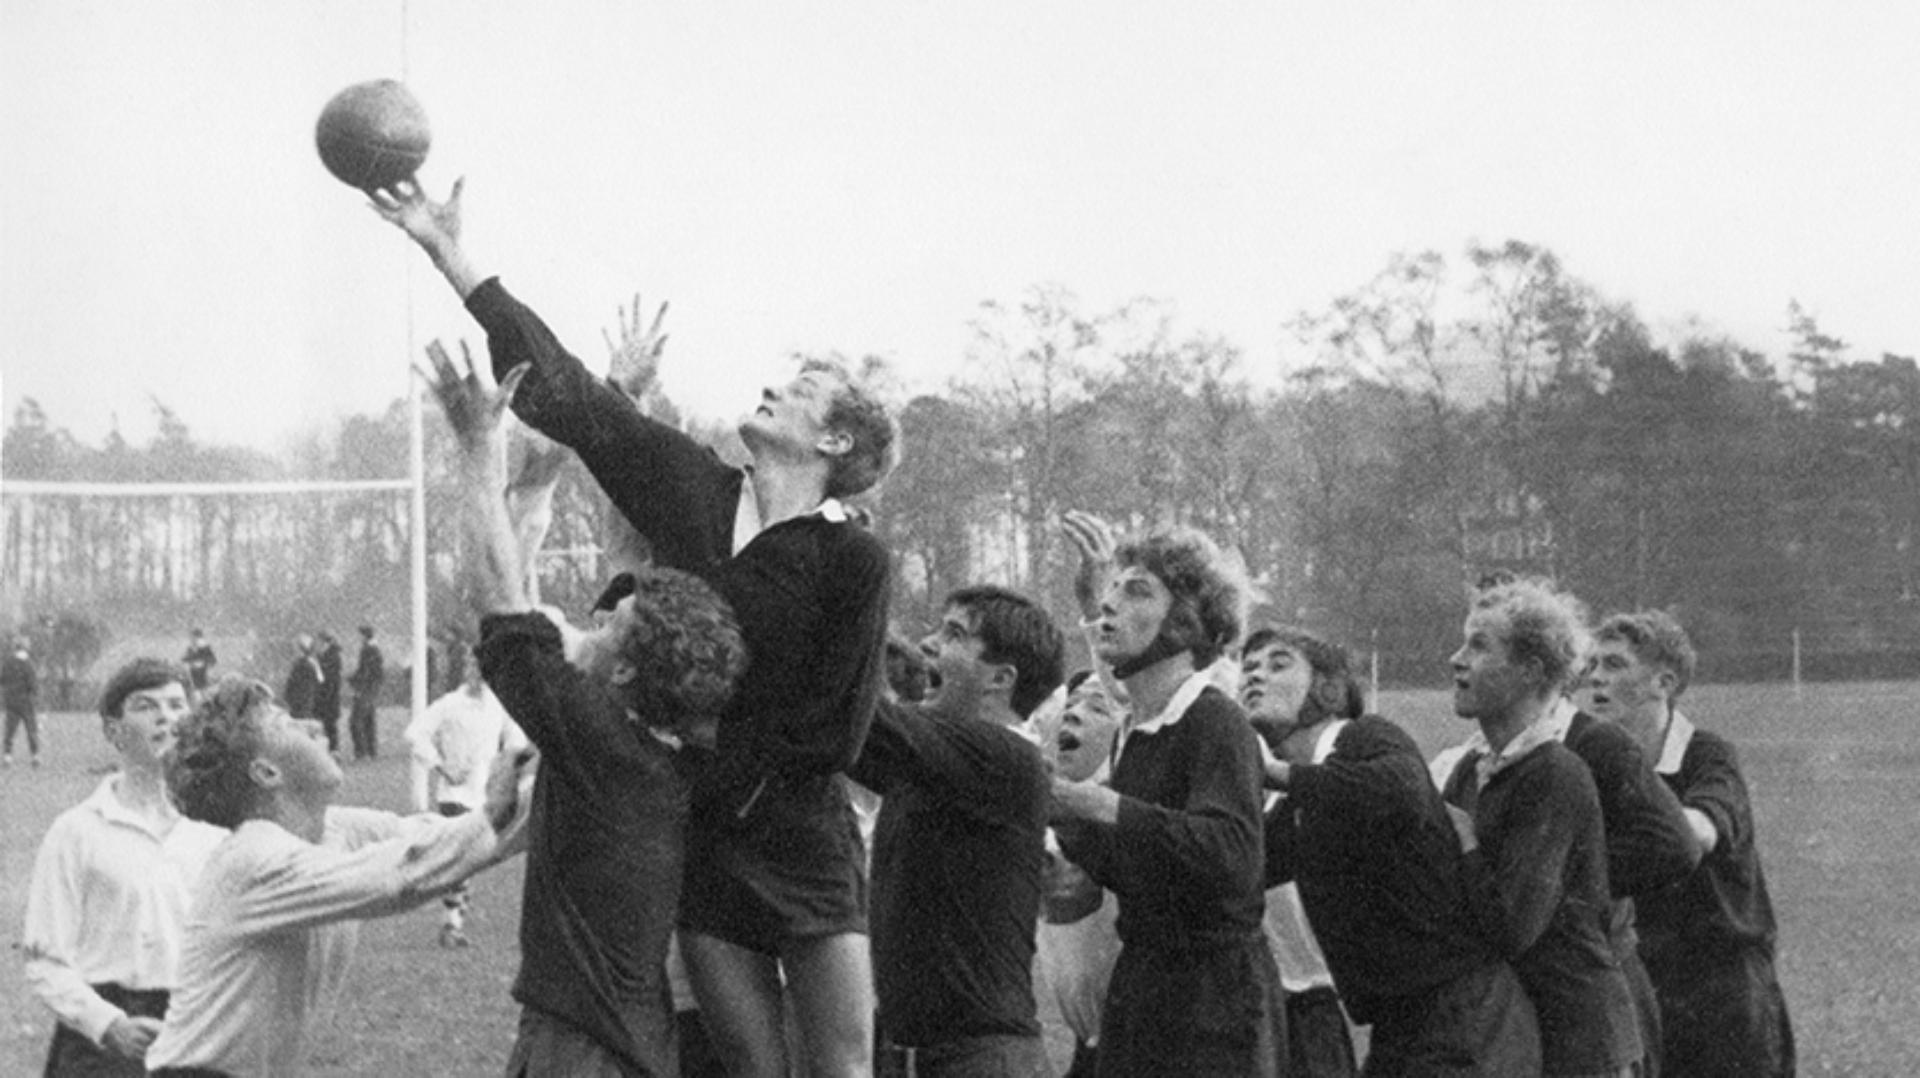 James Dyson reaches for the ball in a rugby lineout